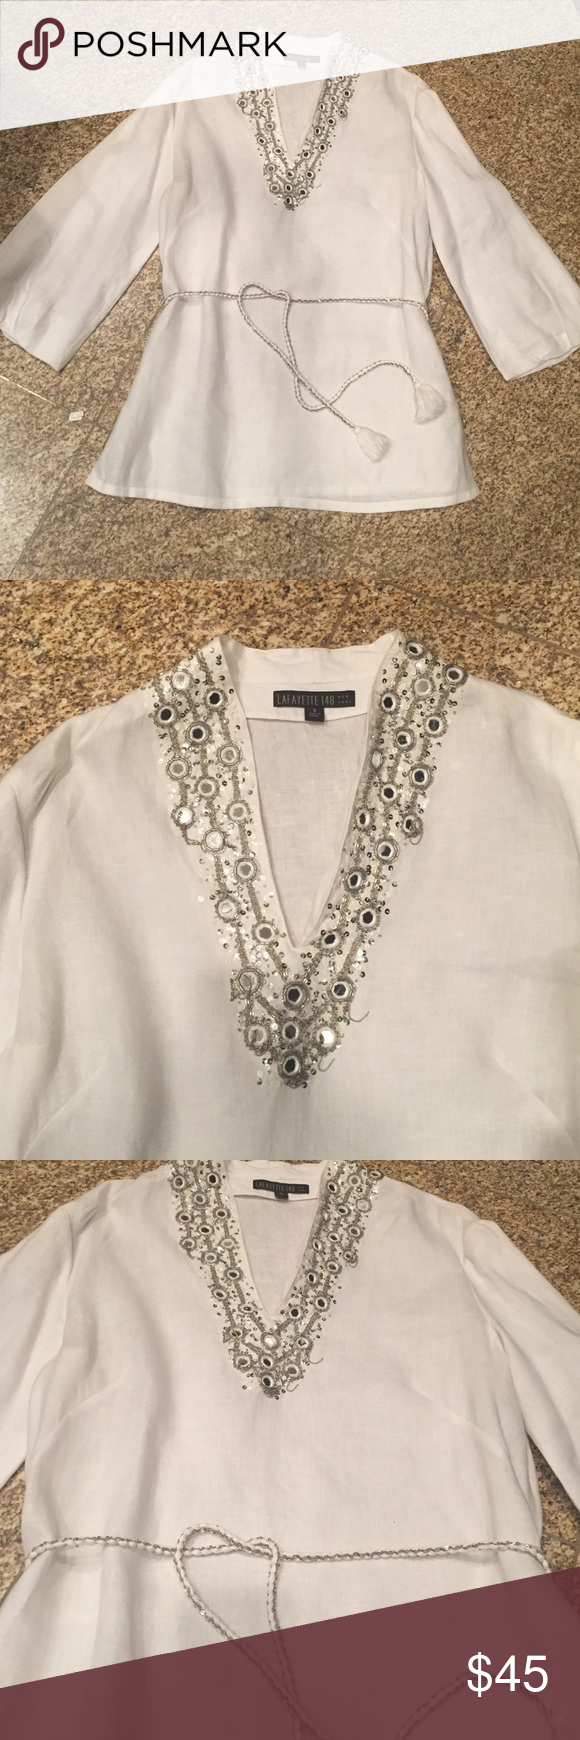 White Linen Tunic Blouse Lagayette 148 white linen tunic blouse... V- neck with sparkle detailing on V... Wide 3/4 sleeves... Braided belt.. Almost new... Wore once...aprox. 28 inches from shoulder down Lafayette 148 New York Tops Tunics